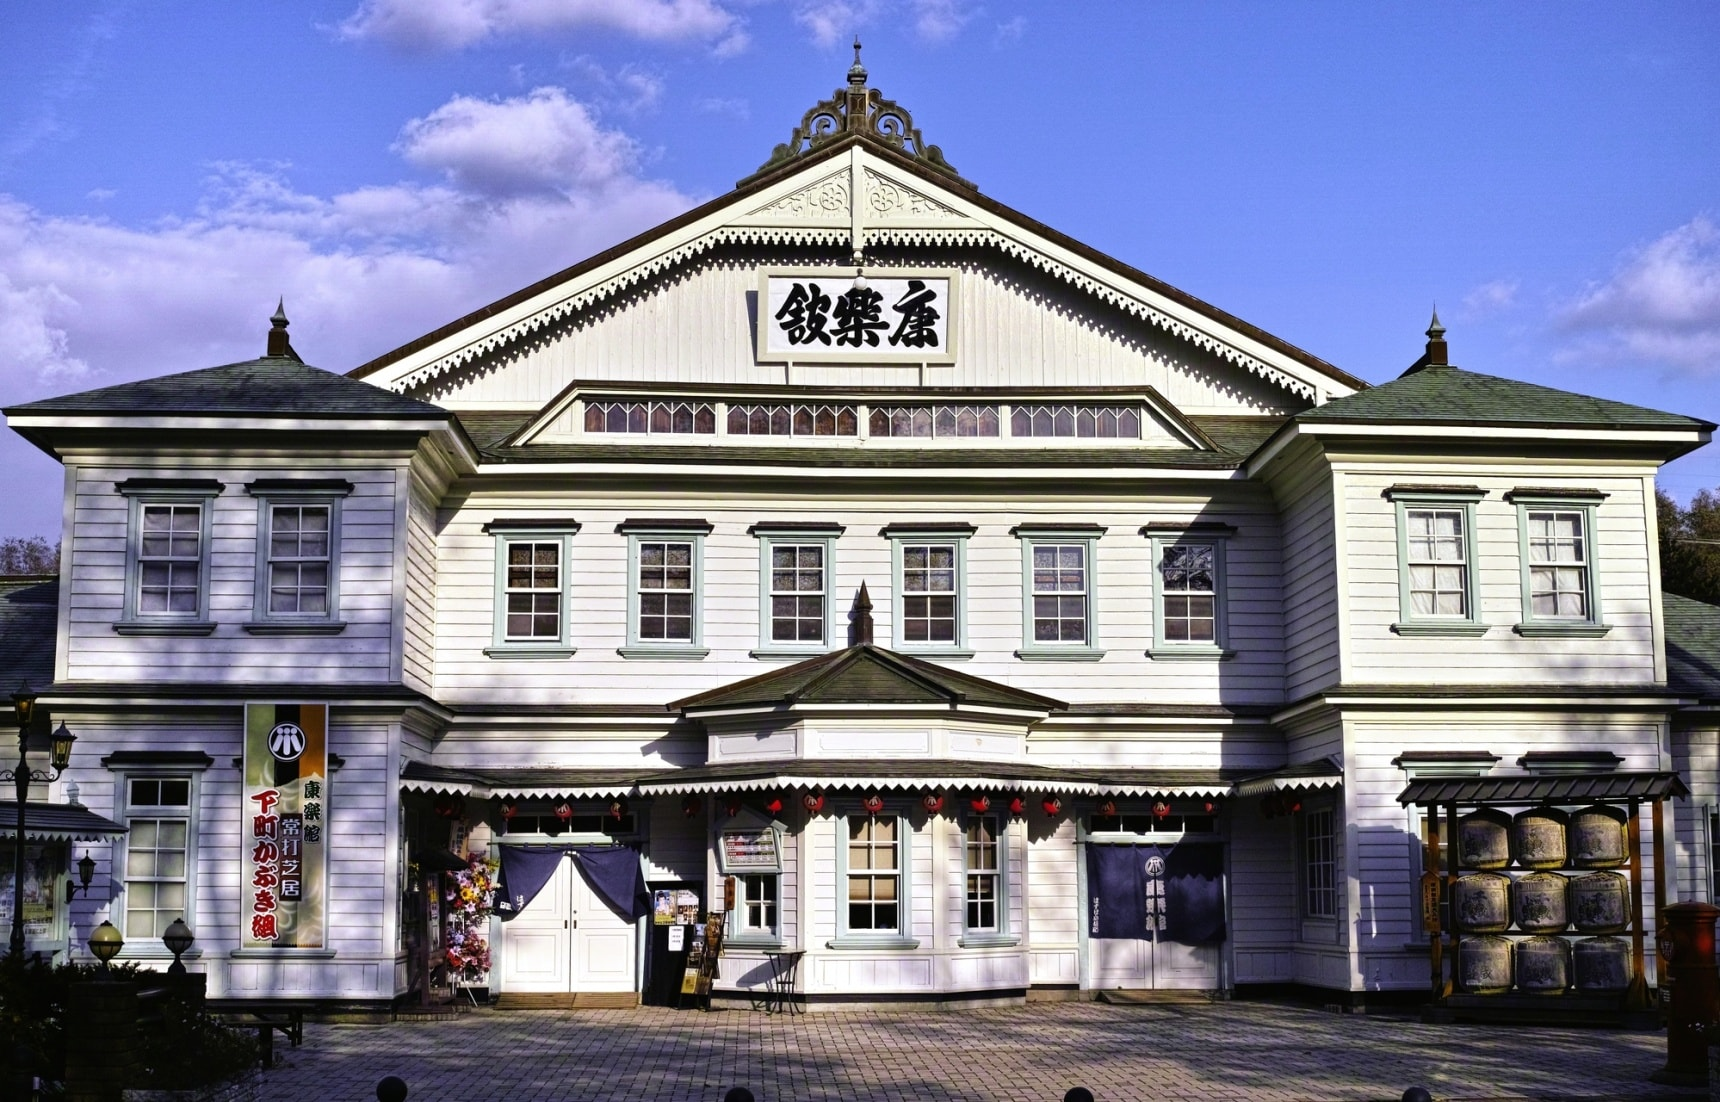 The Oldest Extant Wooden Theater in Japan